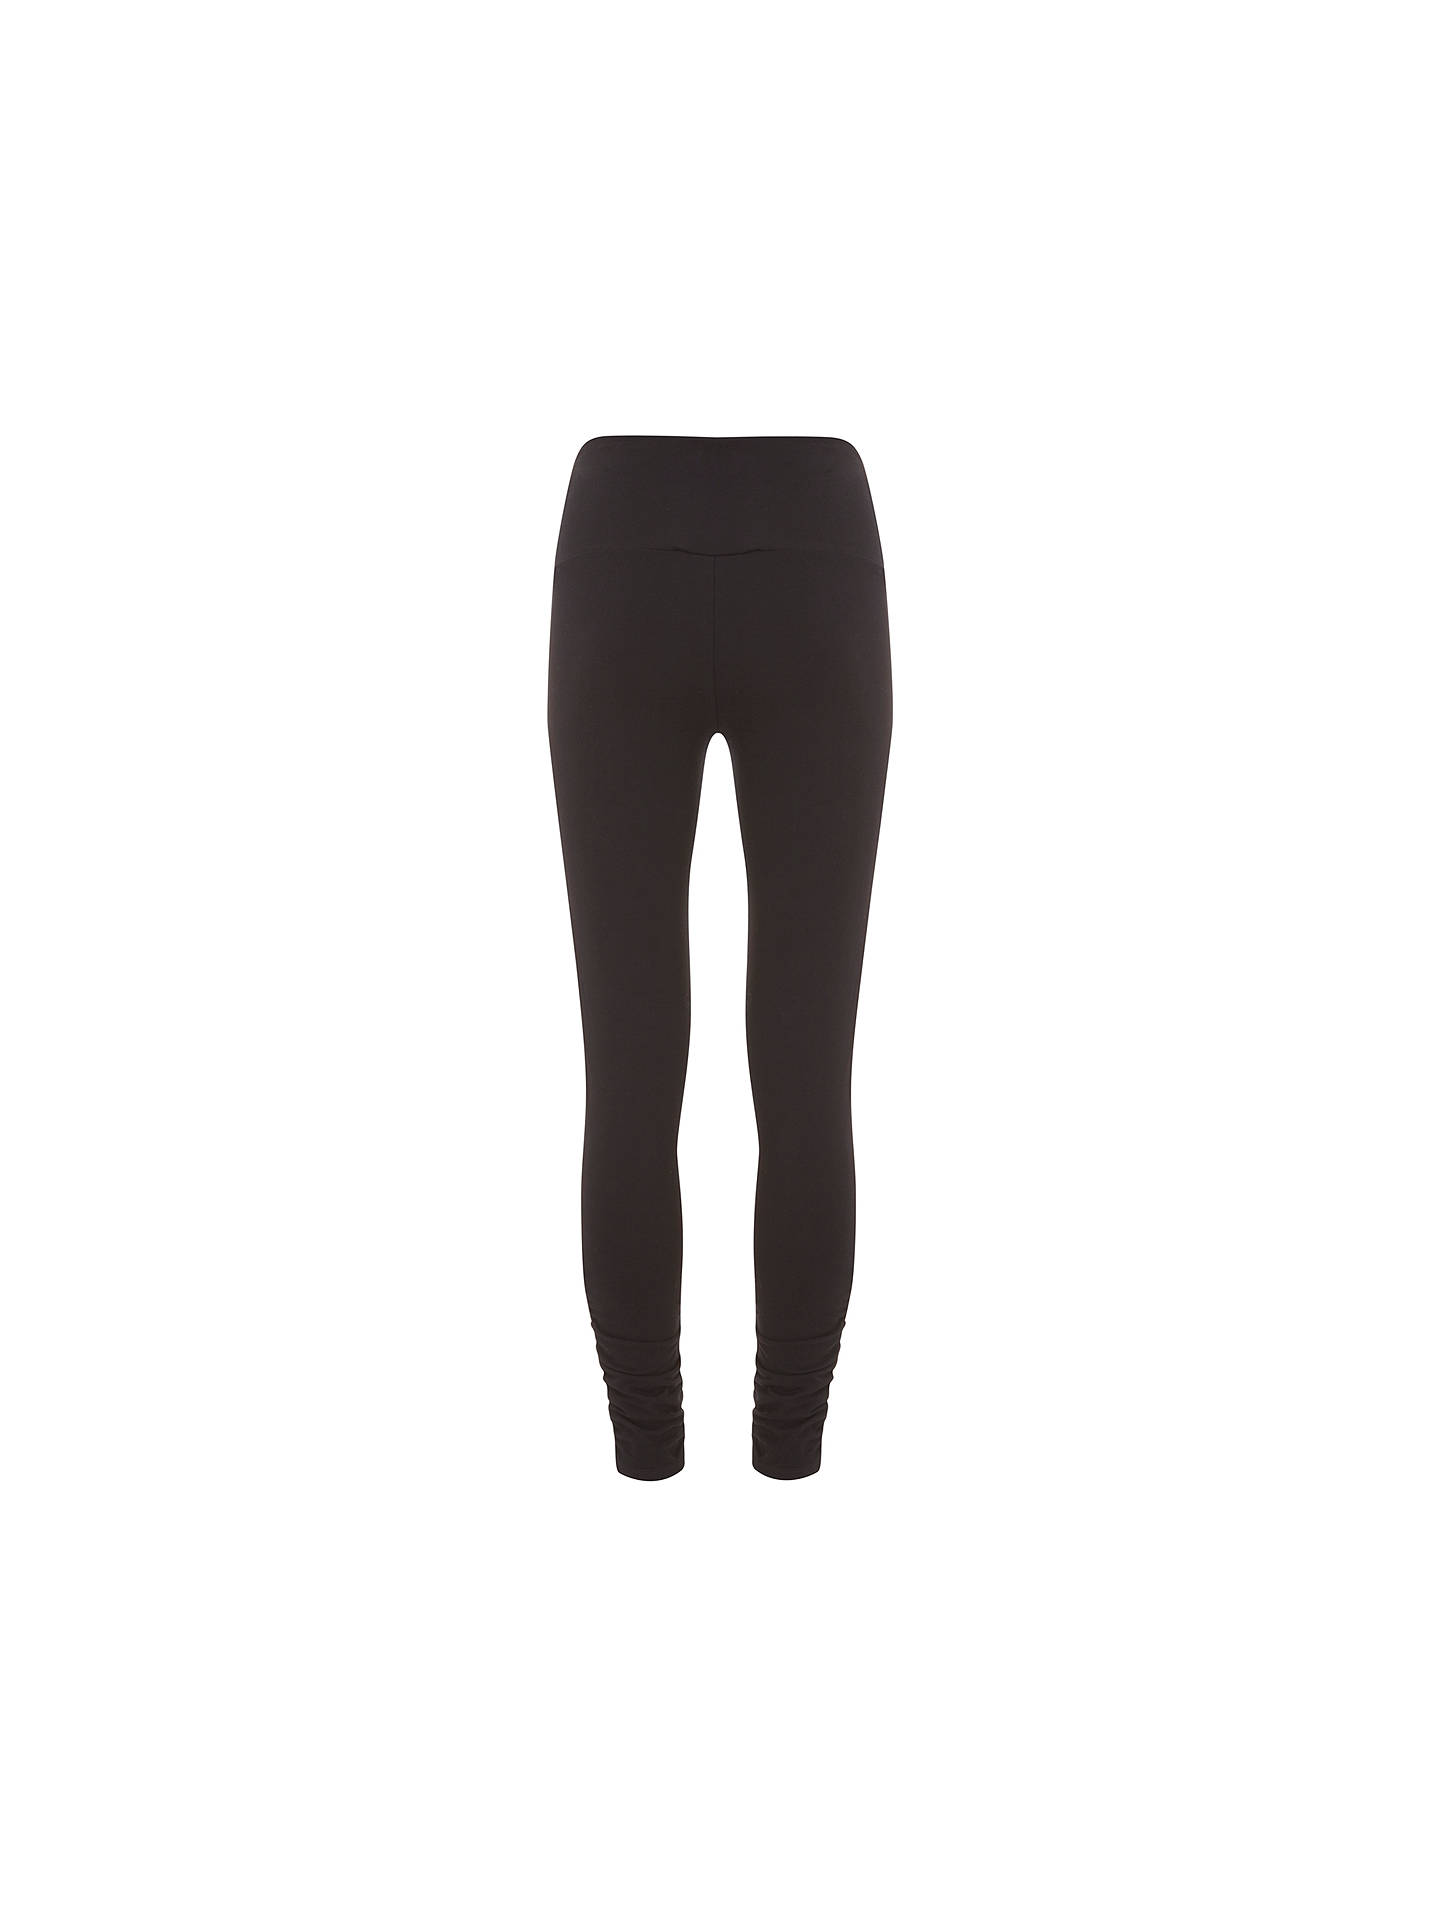 BuyMint Velvet Ankle Zip Leggings, Black, S Online at johnlewis.com